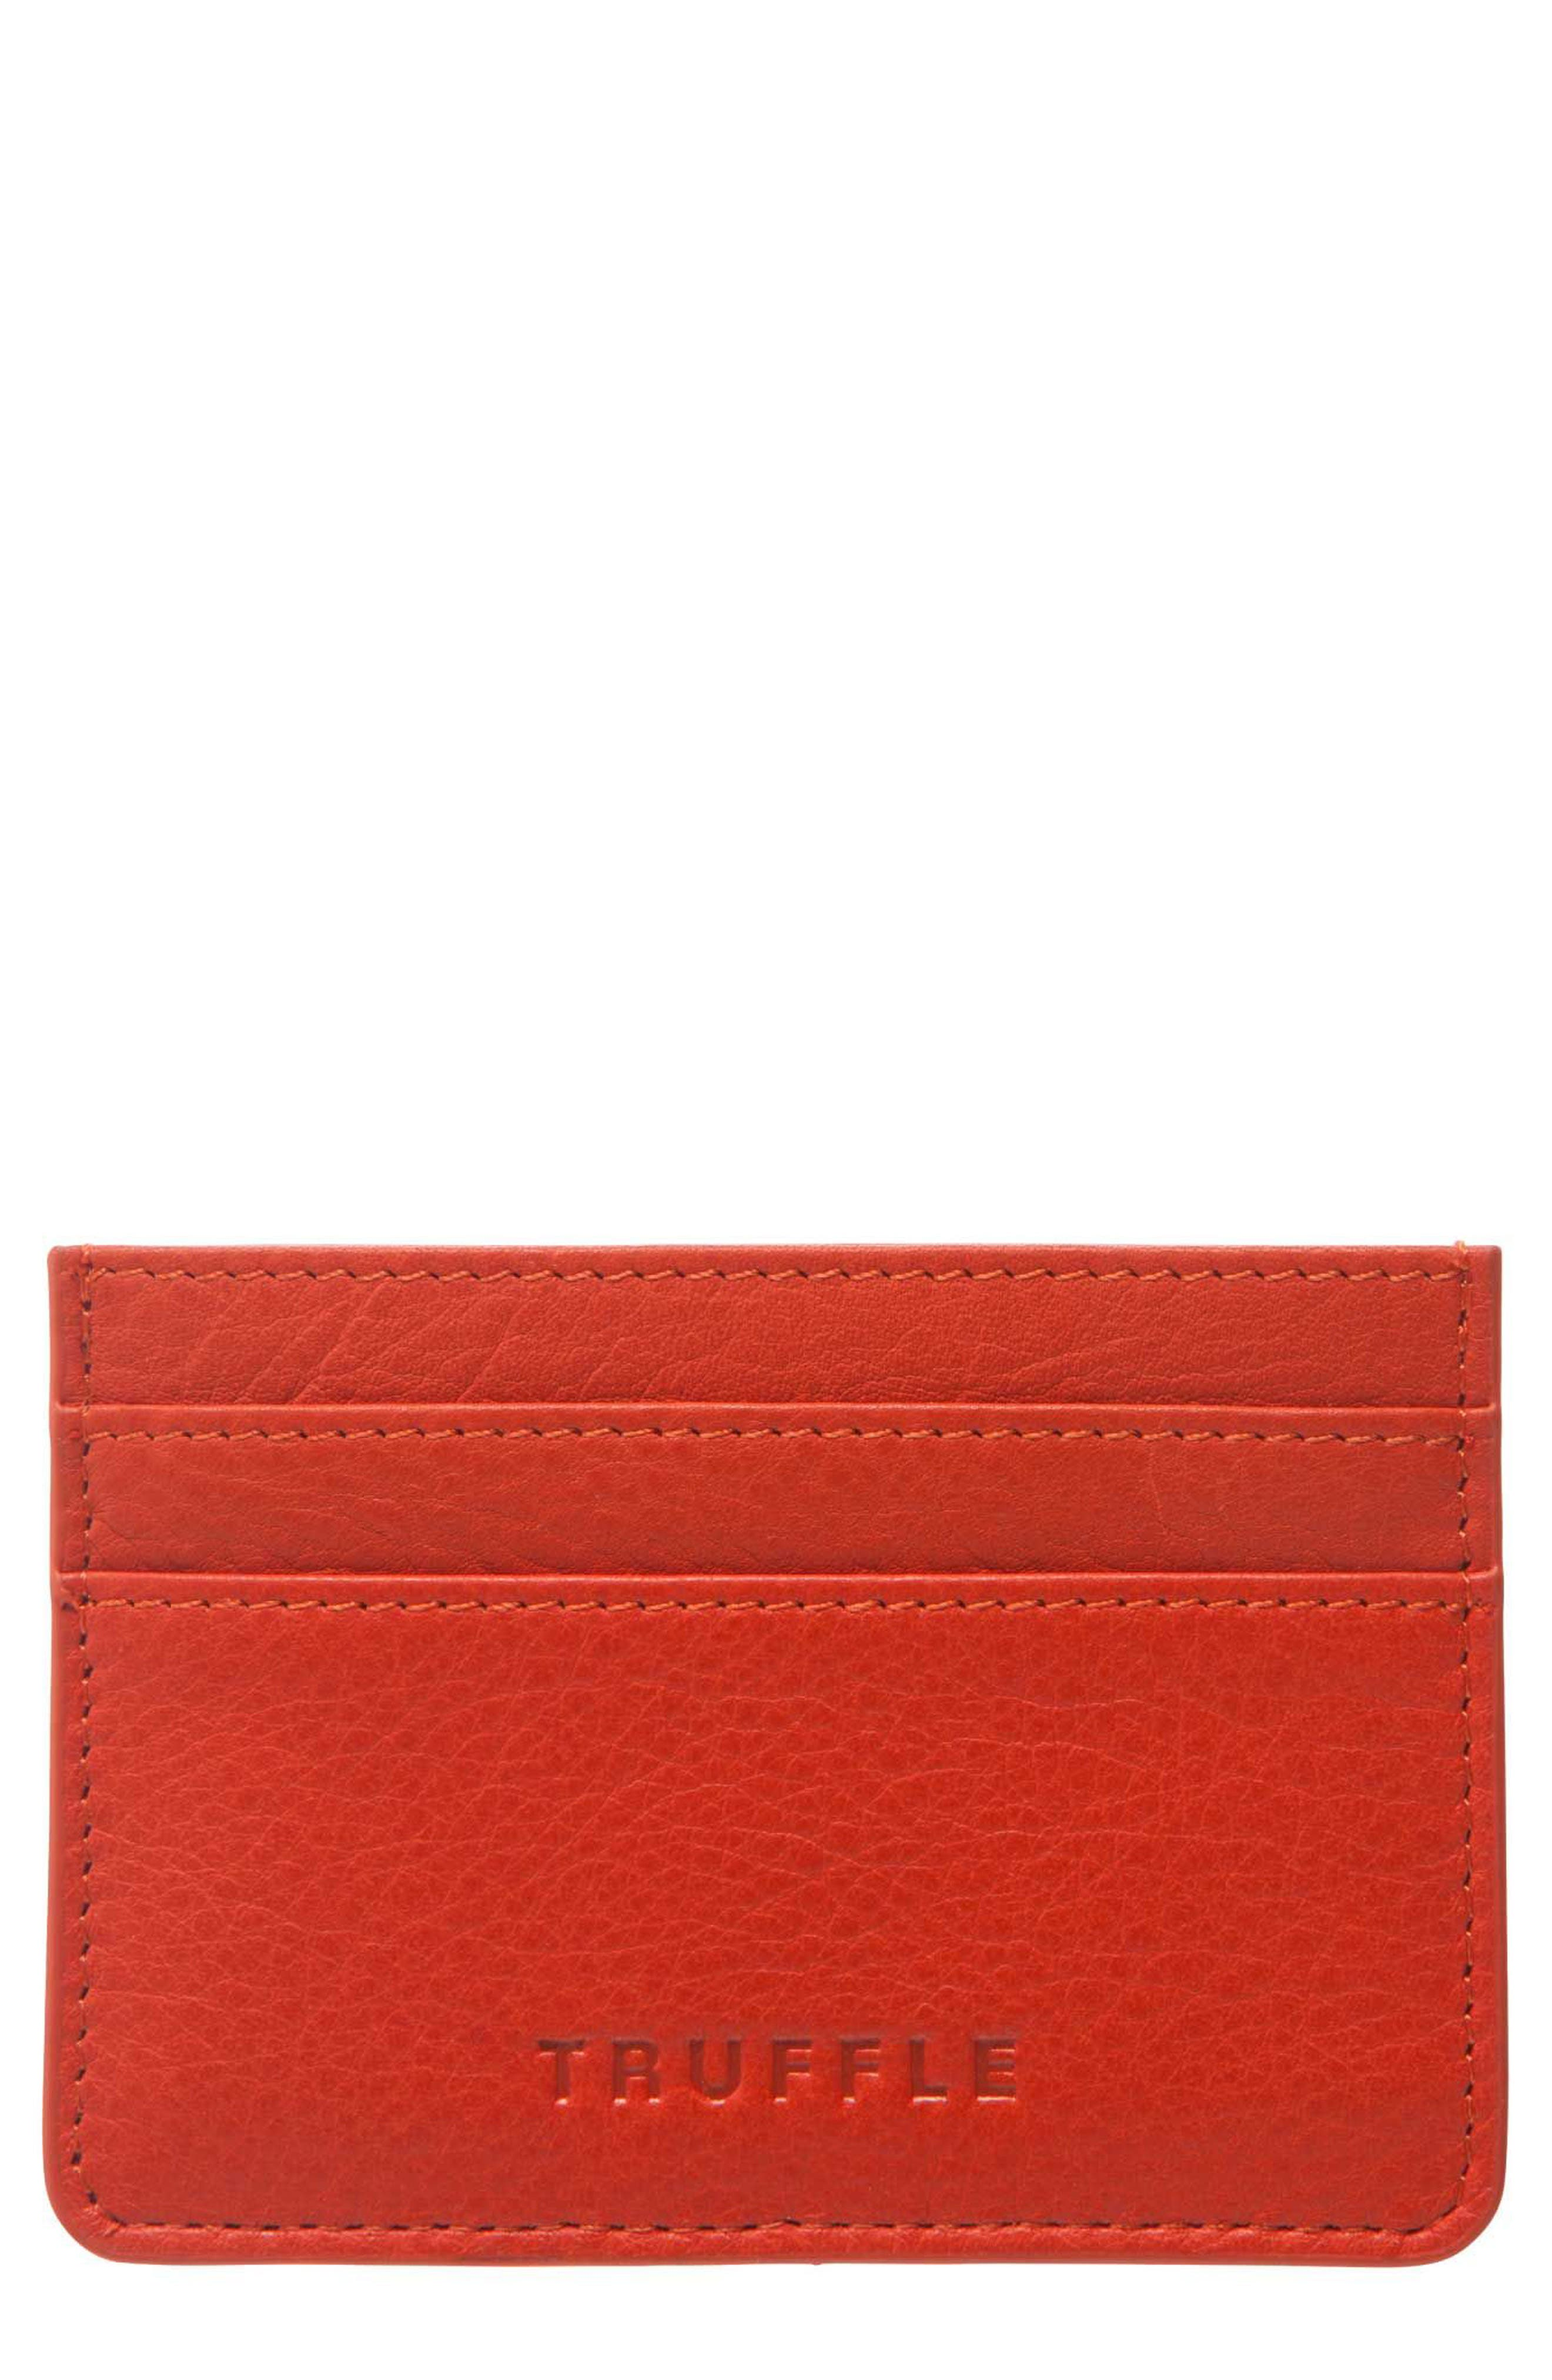 Privacy Leather Card Case,                             Main thumbnail 1, color,                             Poppy